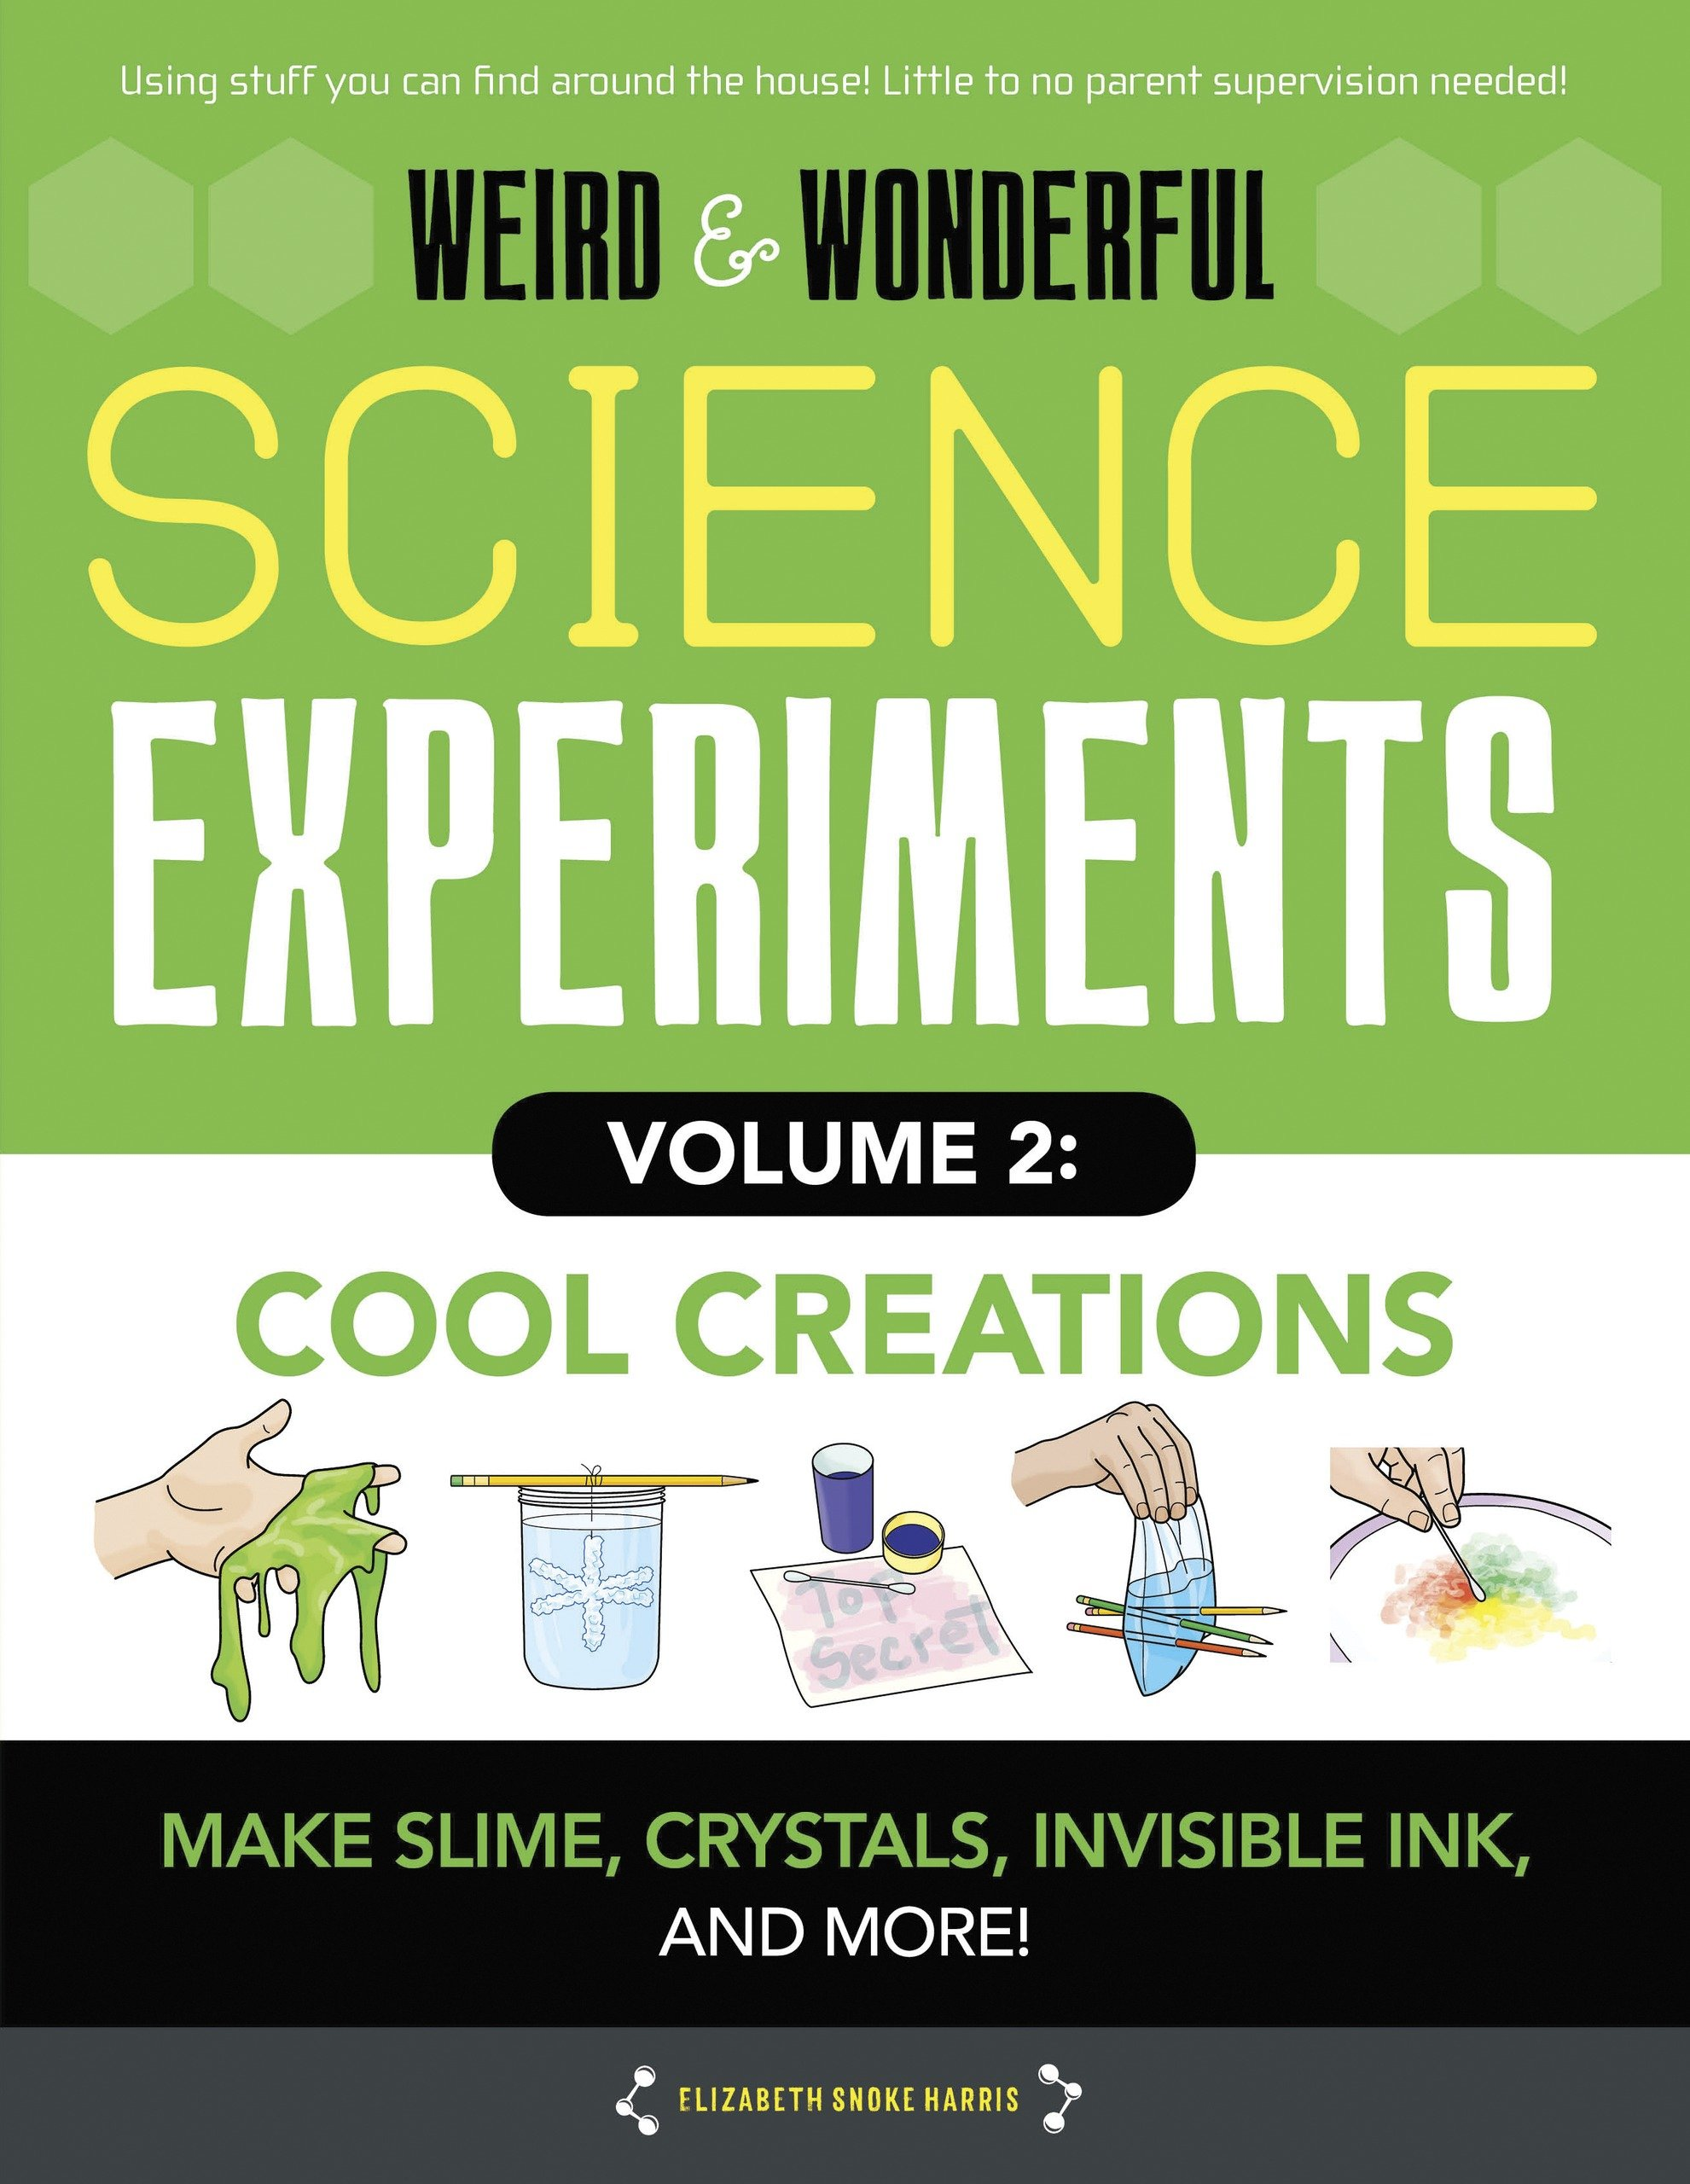 Weird & Wonderful Science Experiments Volume 2: Cool Creations: Make slime, crystals, invisible ink, and more!